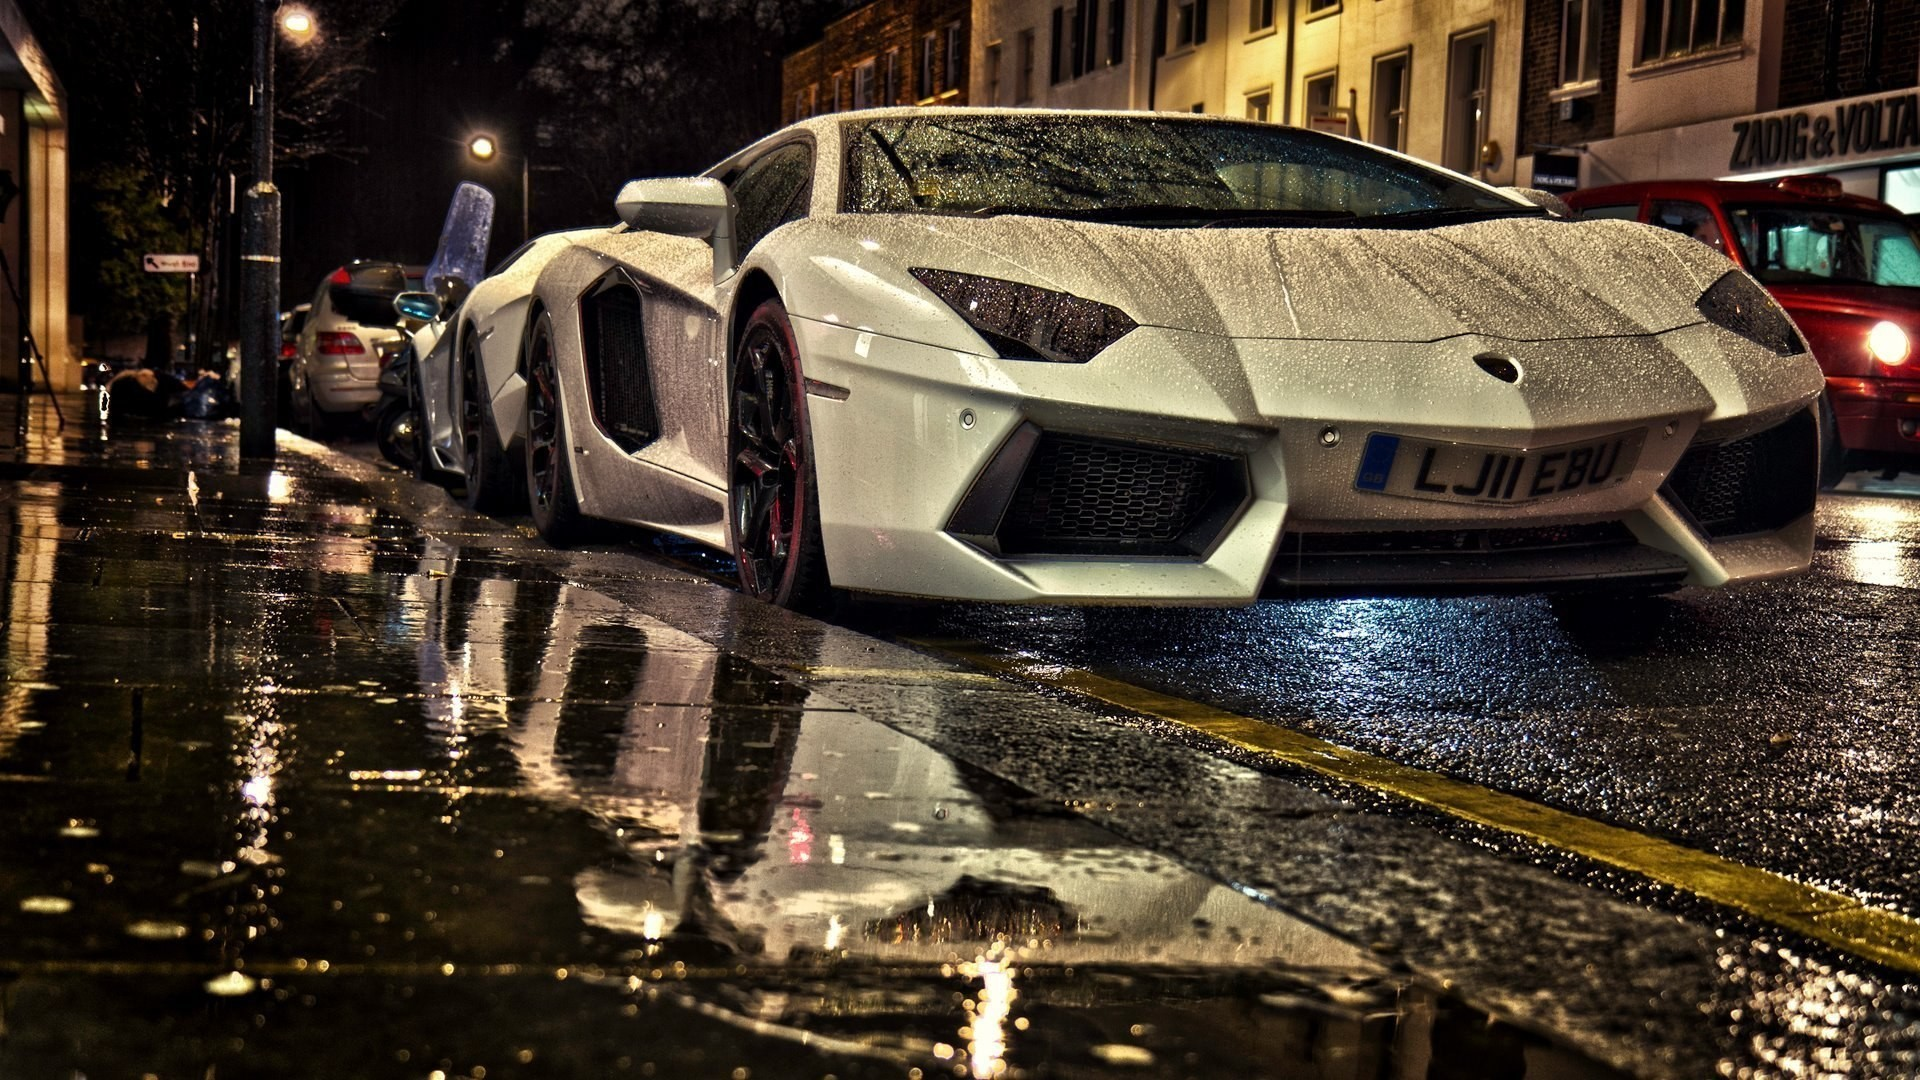 Lamborghini Wallpaper Hd For Laptop